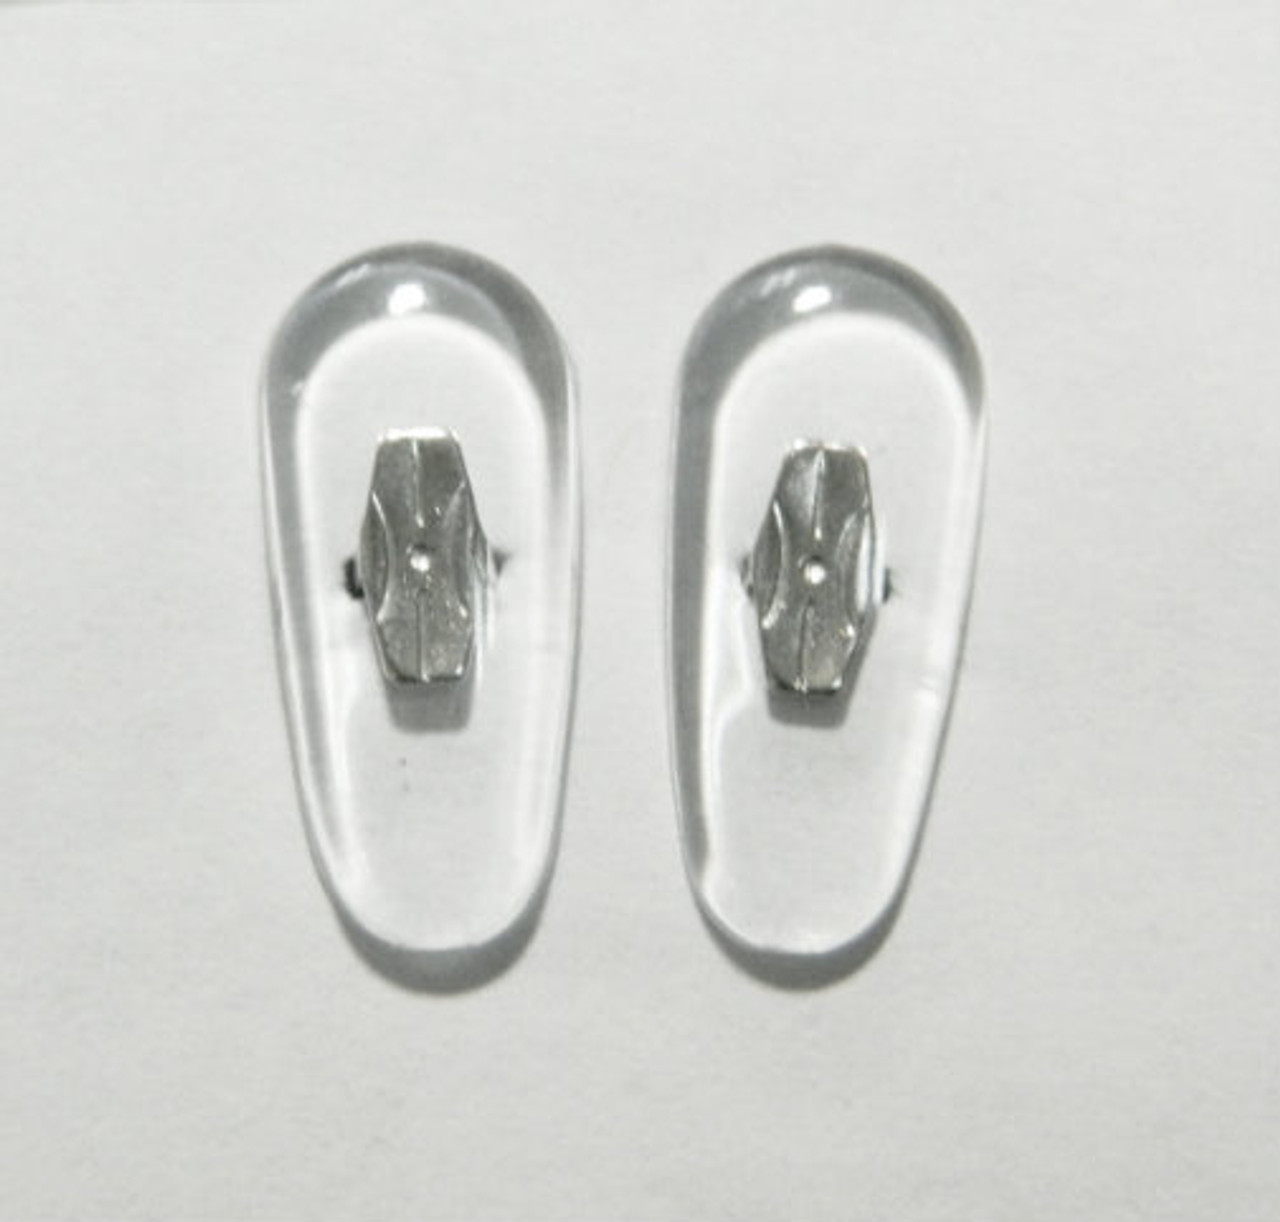 09dfec2898 Crimp-On nose pad 19mm length in Tear-drop shape made from PVC with ...